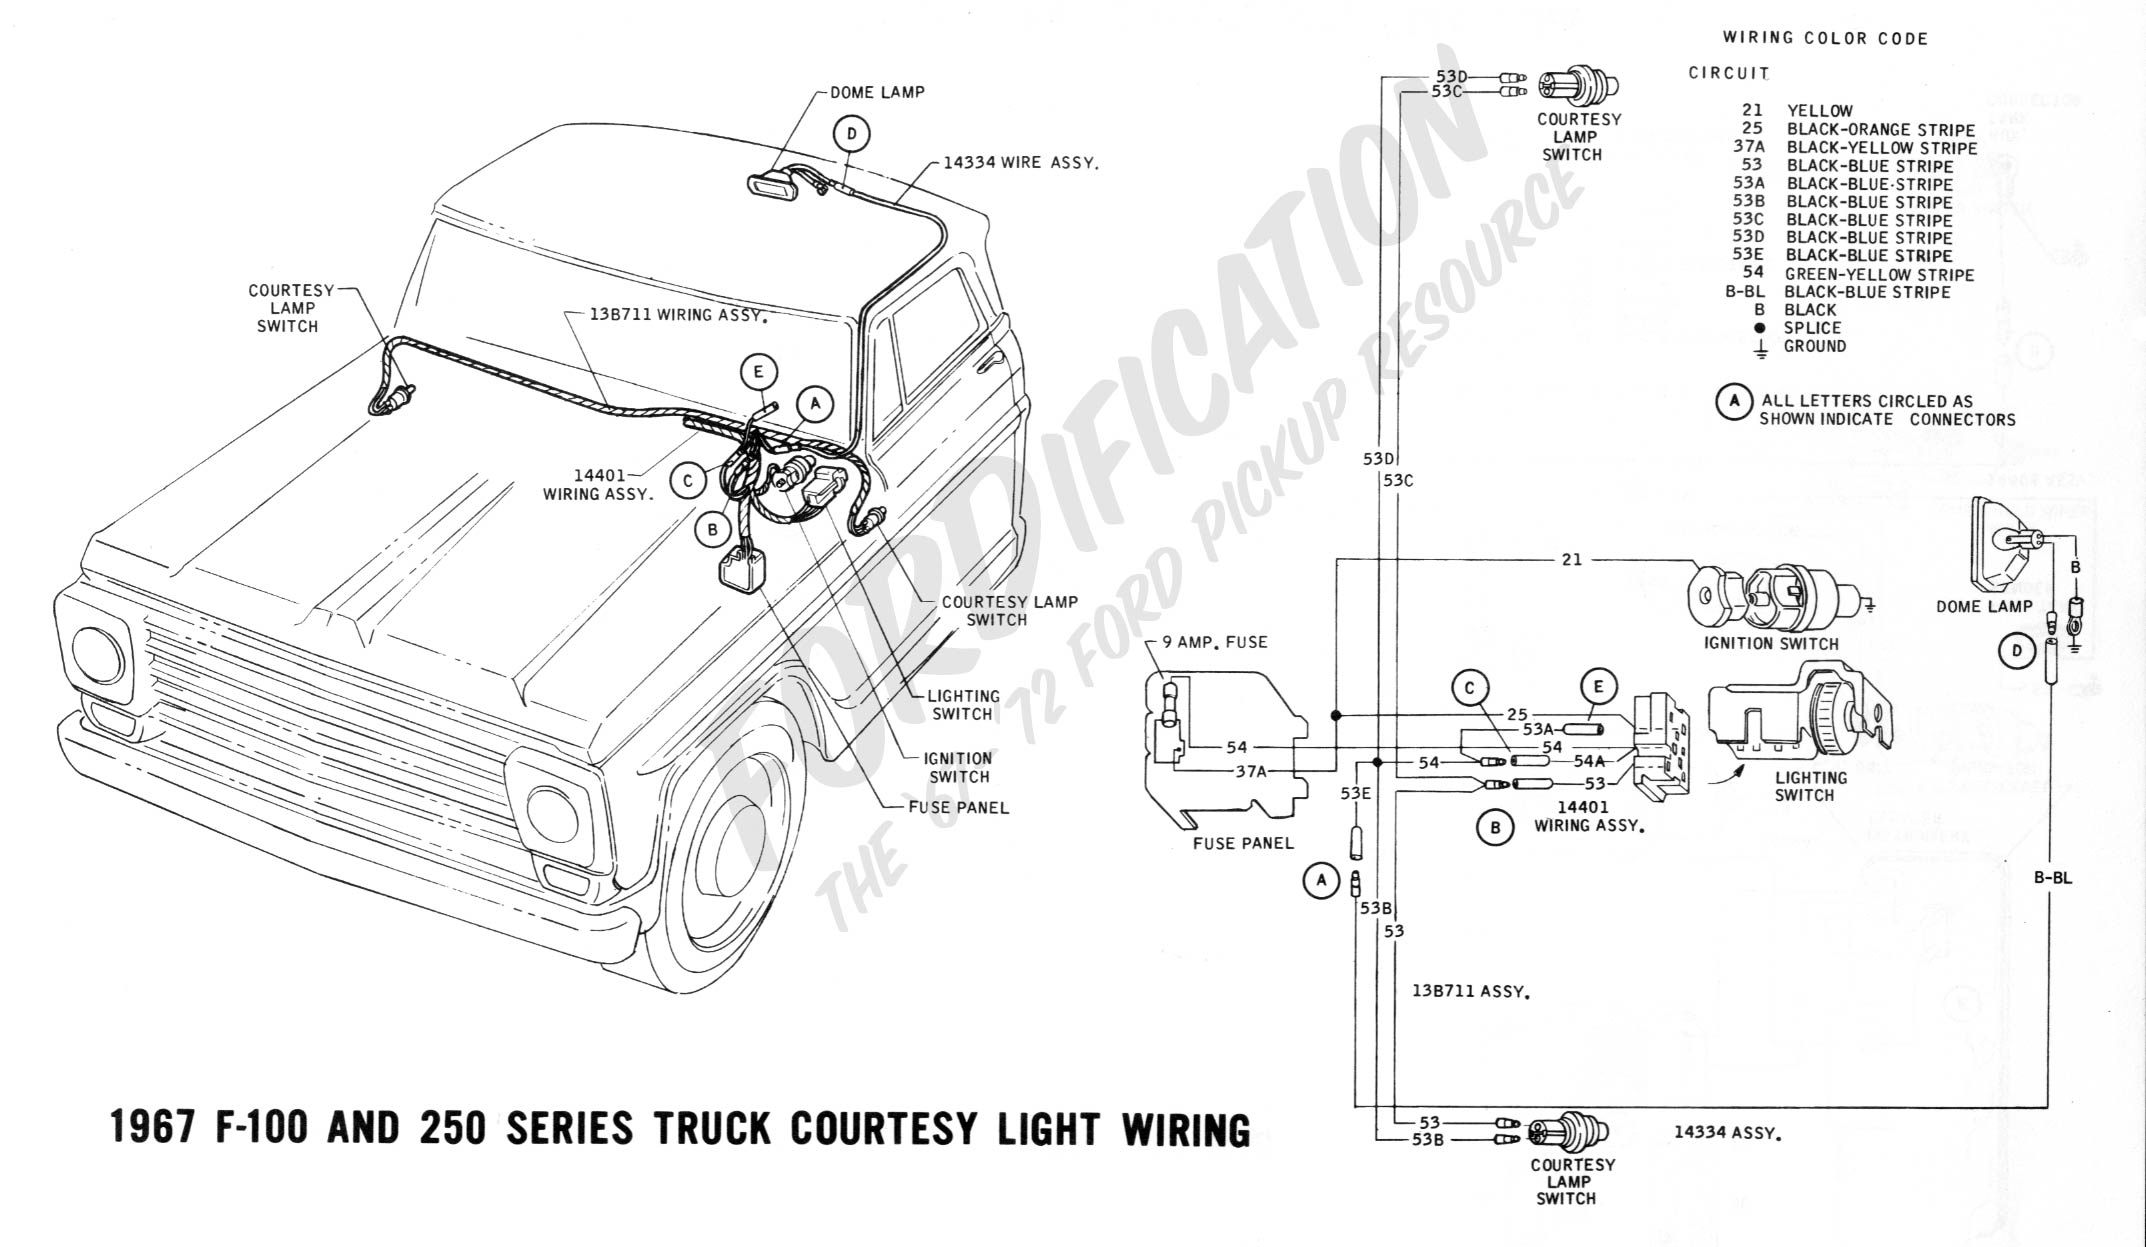 wiring 1967courtesylight ford truck technical drawings and schematics section h wiring 1962 ford fairlane wiring diagram at reclaimingppi.co